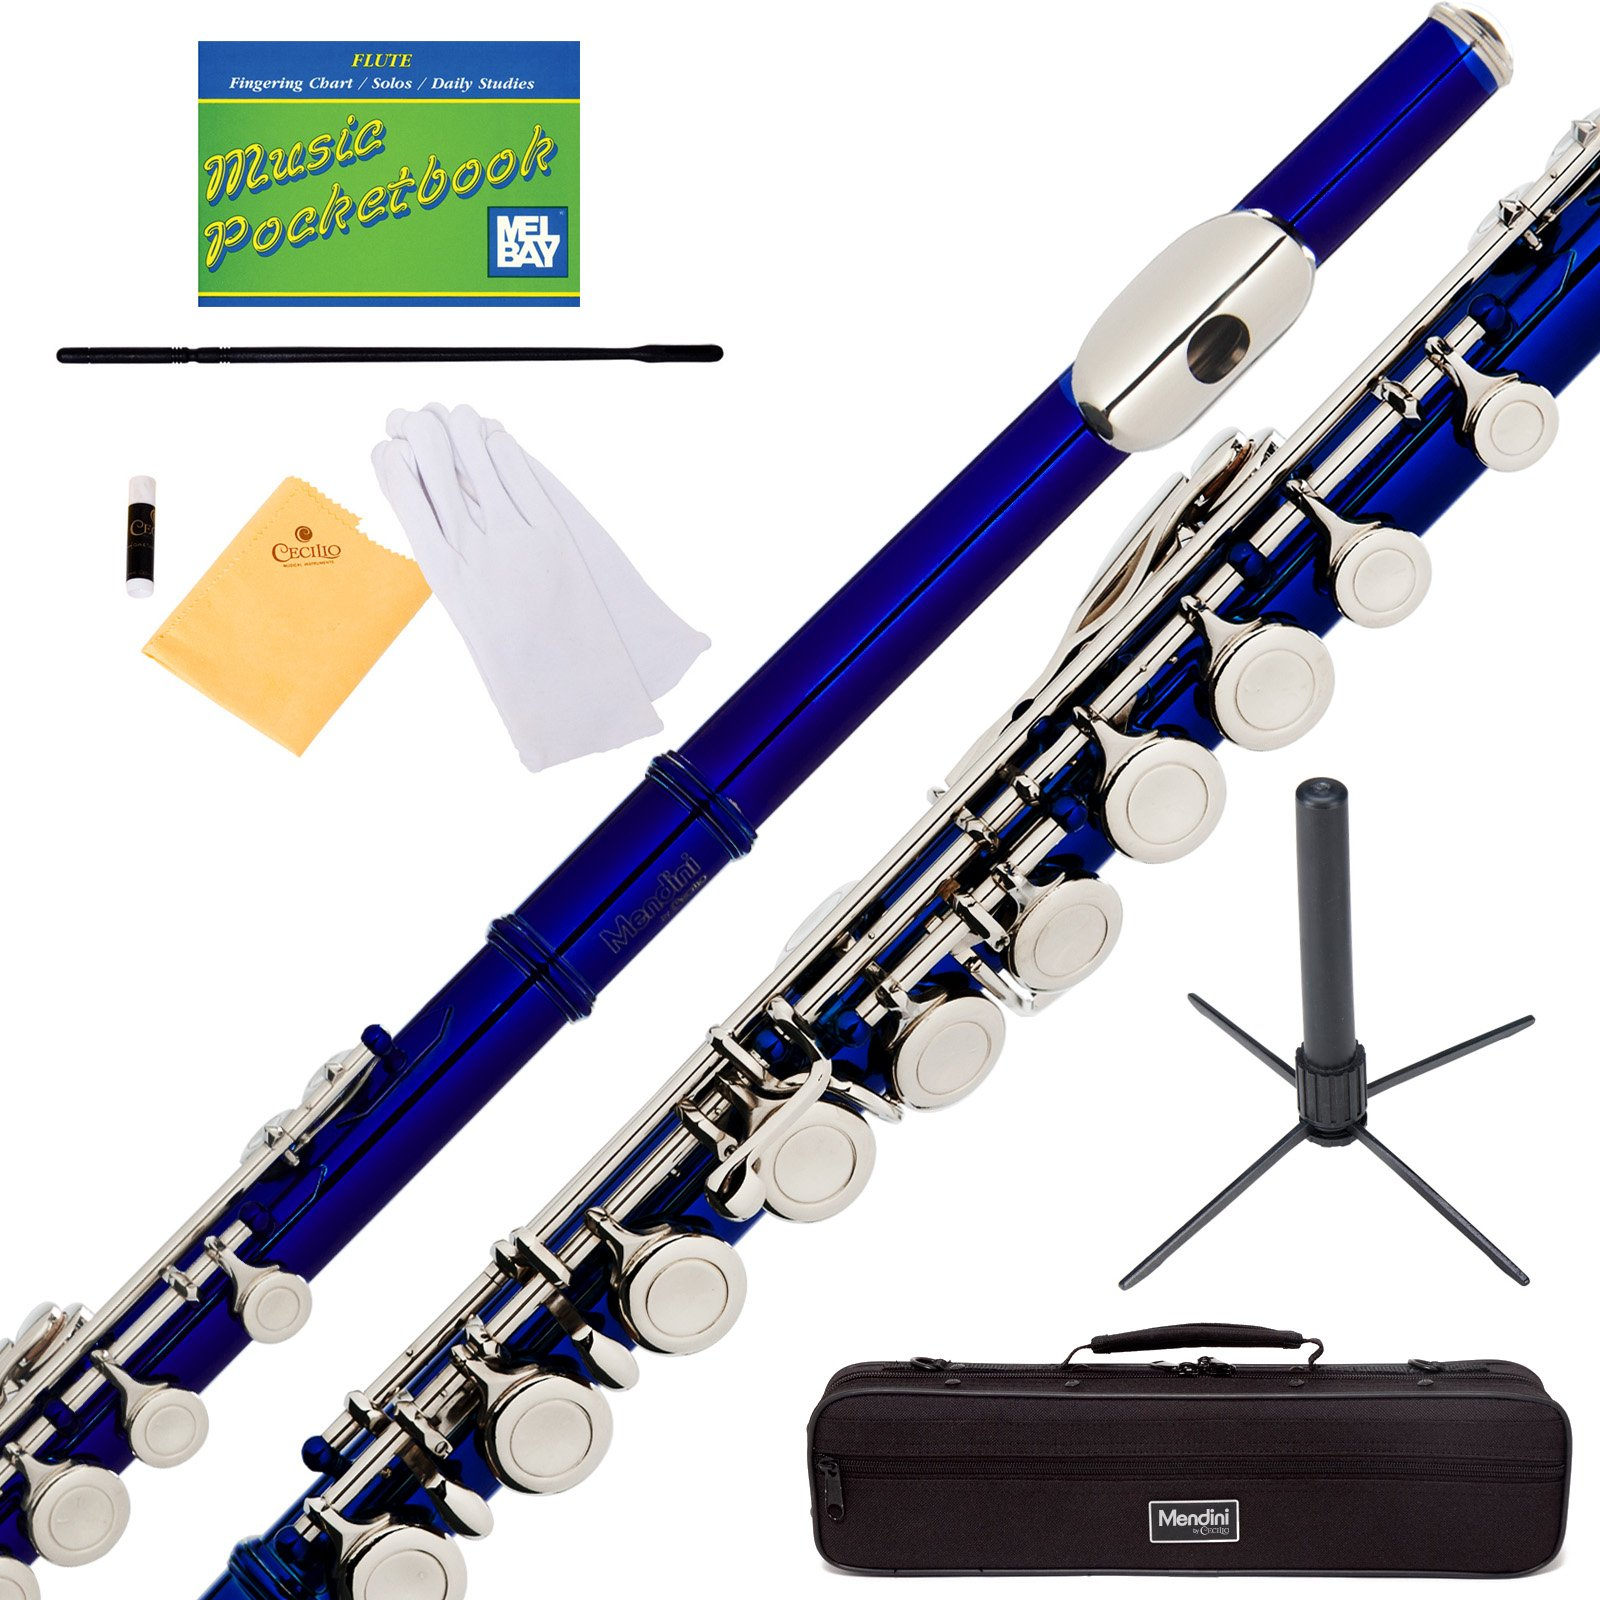 Mendini Closed Hole C Purple Flute with Stand, 1 Year Warranty, Case, Cleaning Rod, Cloth, Joint Grease, and Gloves - MFE-PL+SD+PB